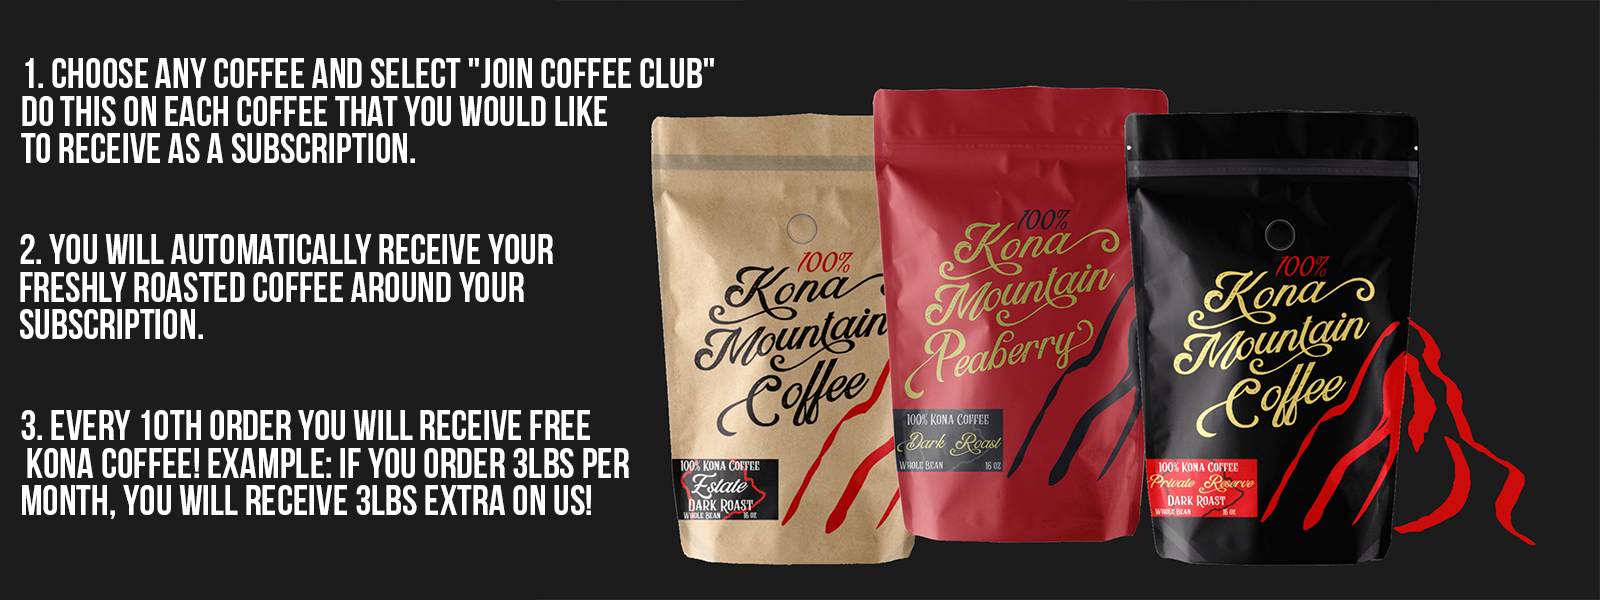 Choose any coffee club and select Join Coffee Club. You will automatically receive your fresh coffee for the dates that you select. Every 10th order you will receive free coffee! For example, if you order 3lbs per month, on your 10th order you will get 3 free extra pounds!